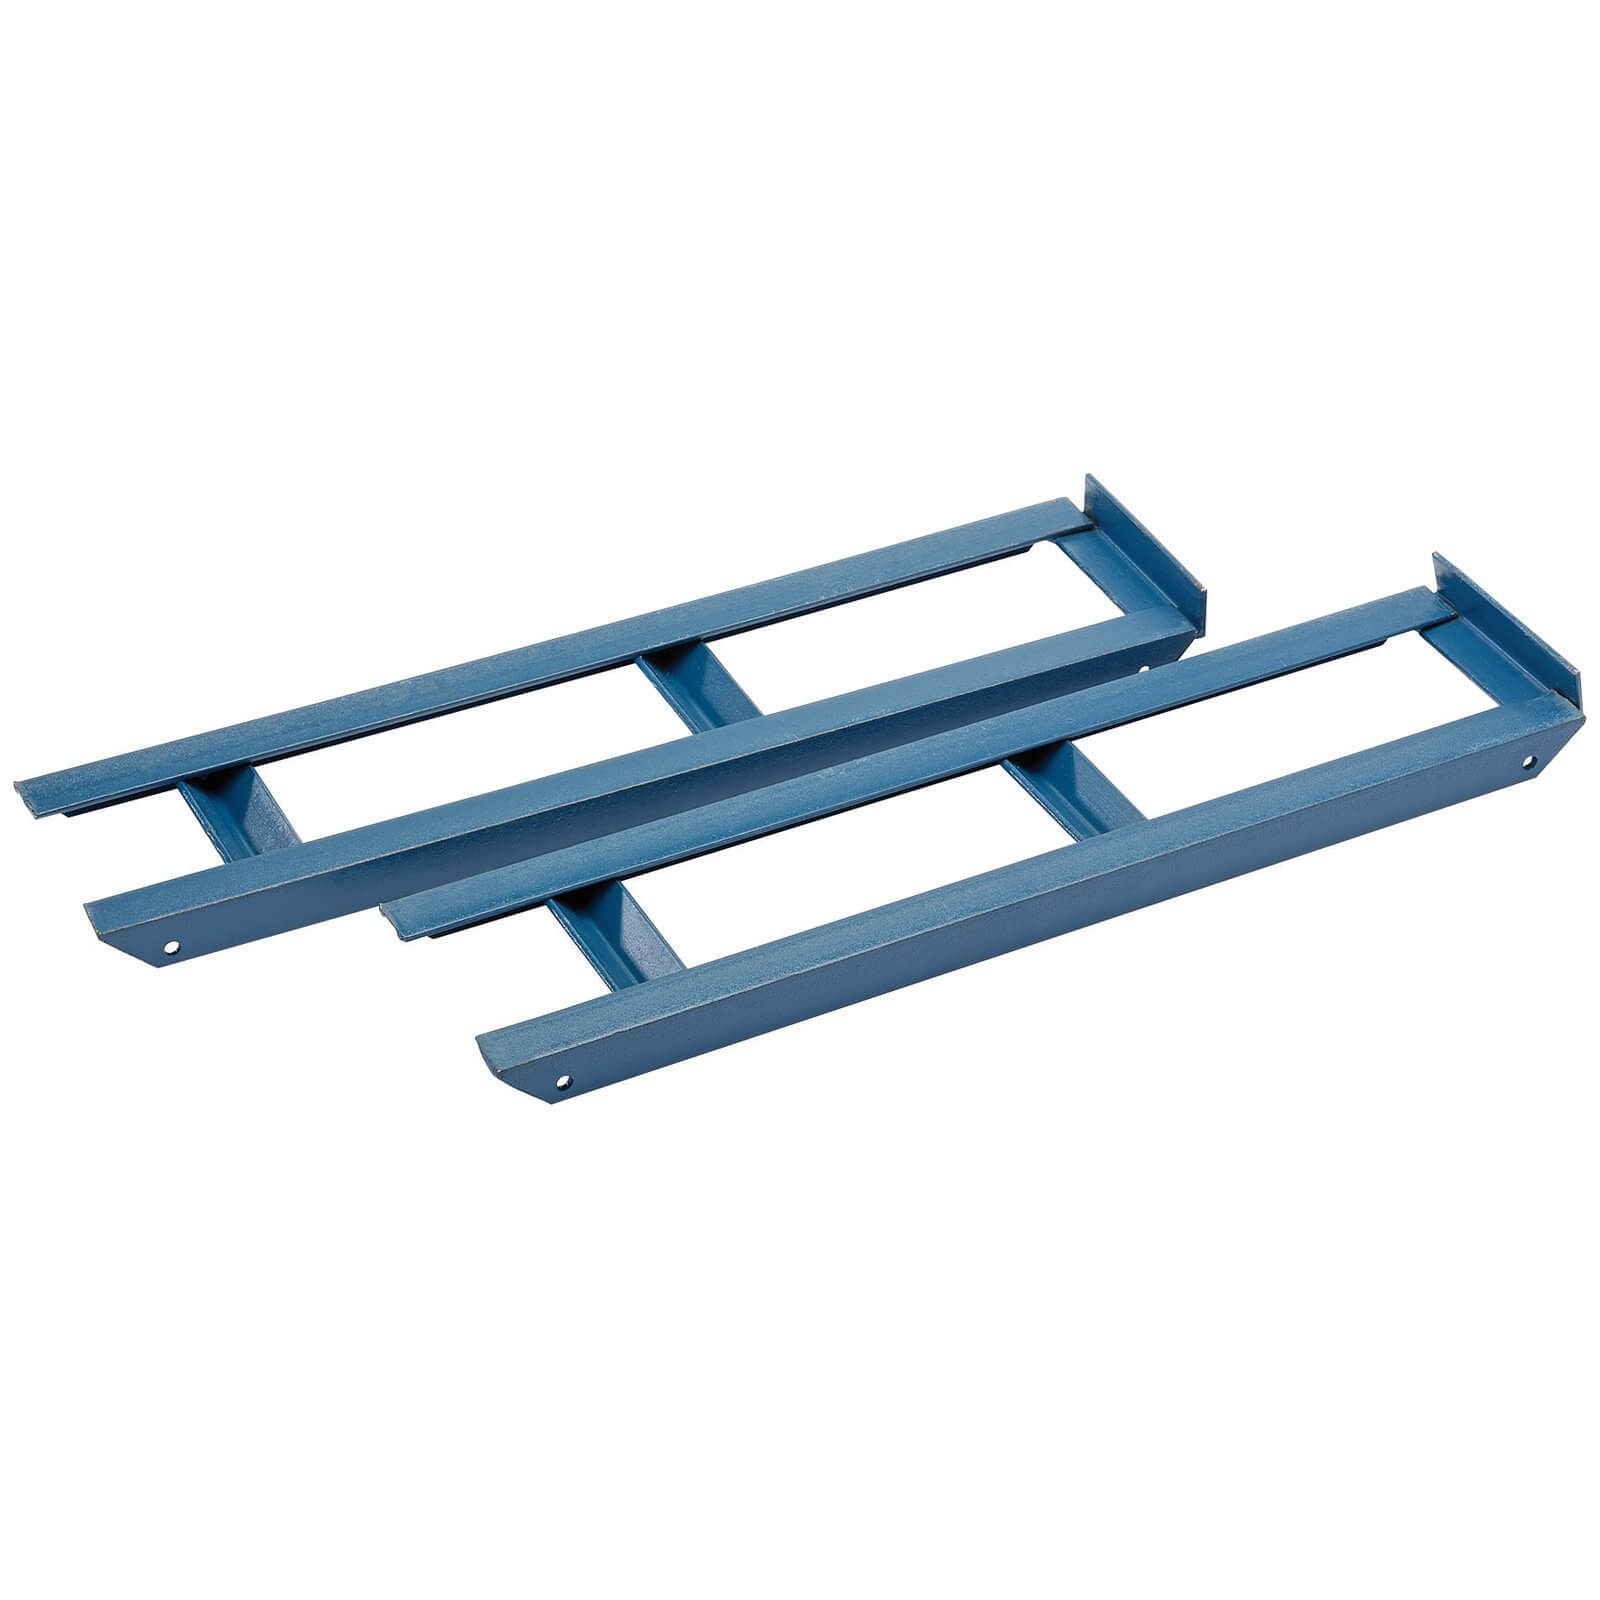 Image of Draper Car Ramp Pair Extension for Low Ground Clearance Cars